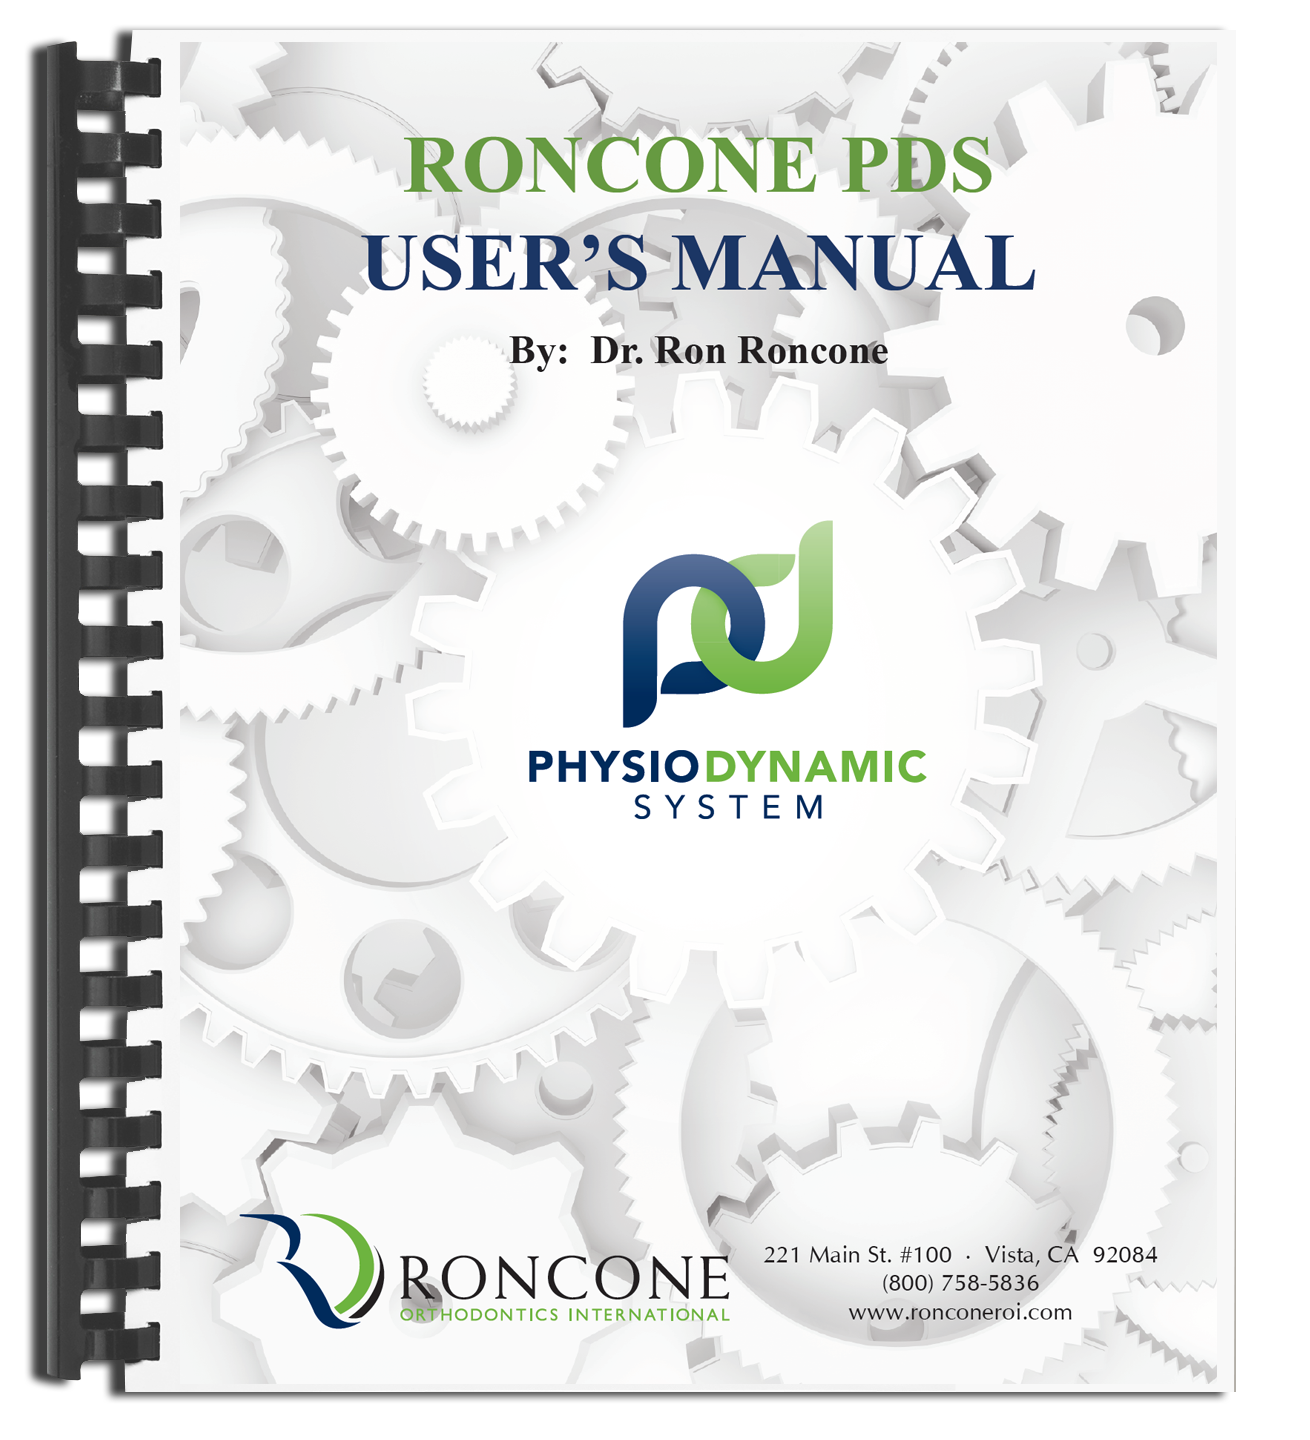 PDS USERS MANUAL